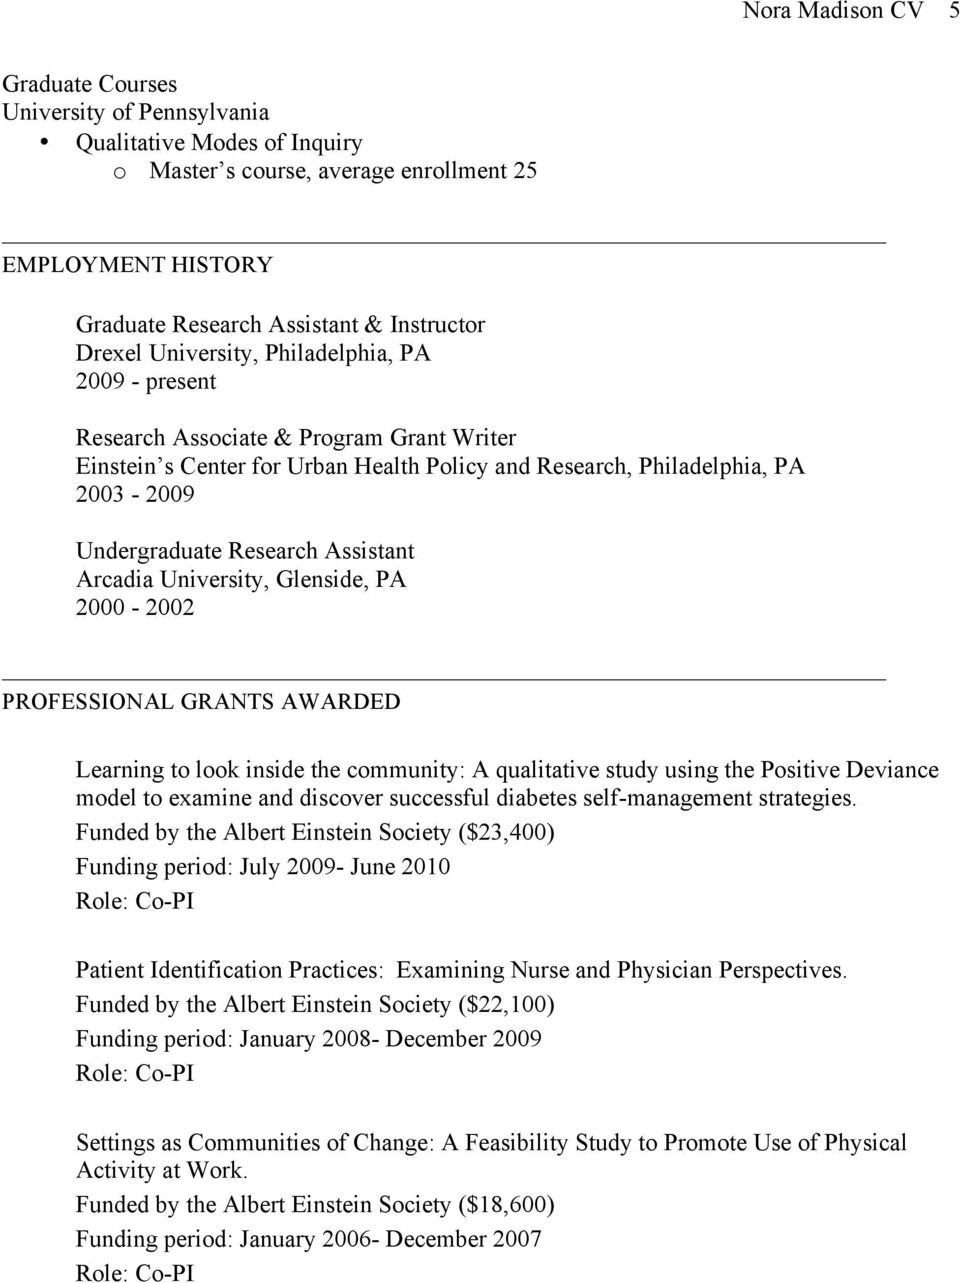 Assistant Arcadia University, Glenside, PA 2000-2002 PROFESSIONAL GRANTS AWARDED Learning to look inside the community: A qualitative study using the Positive Deviance model to examine and discover